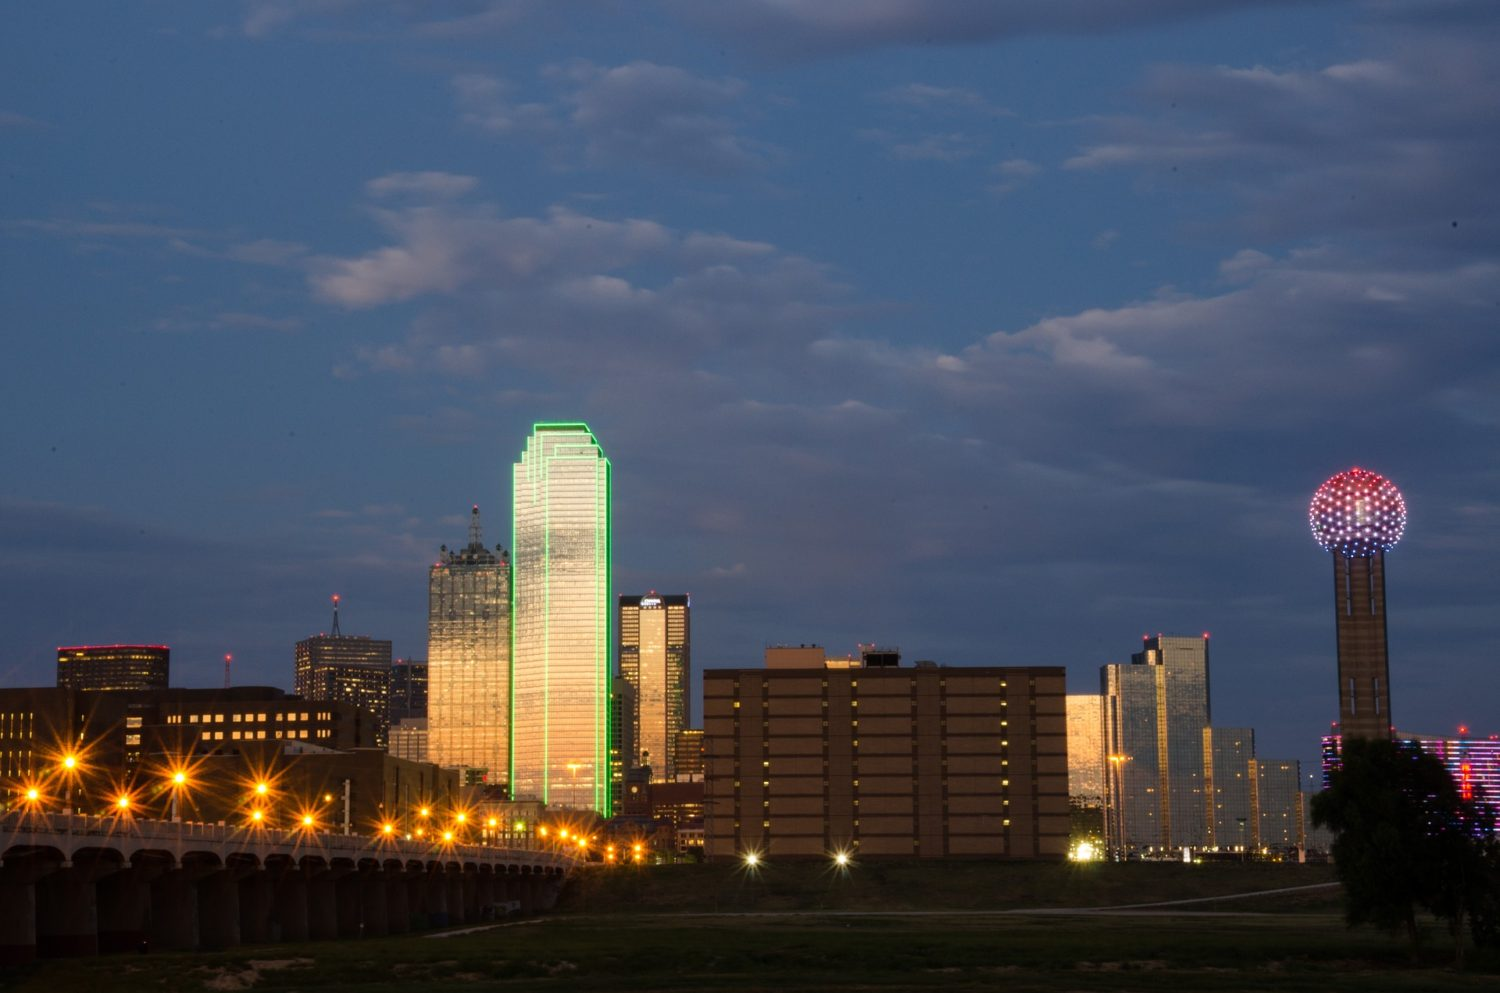 Dallas, Texas, USA with the Reunion Tower on the right